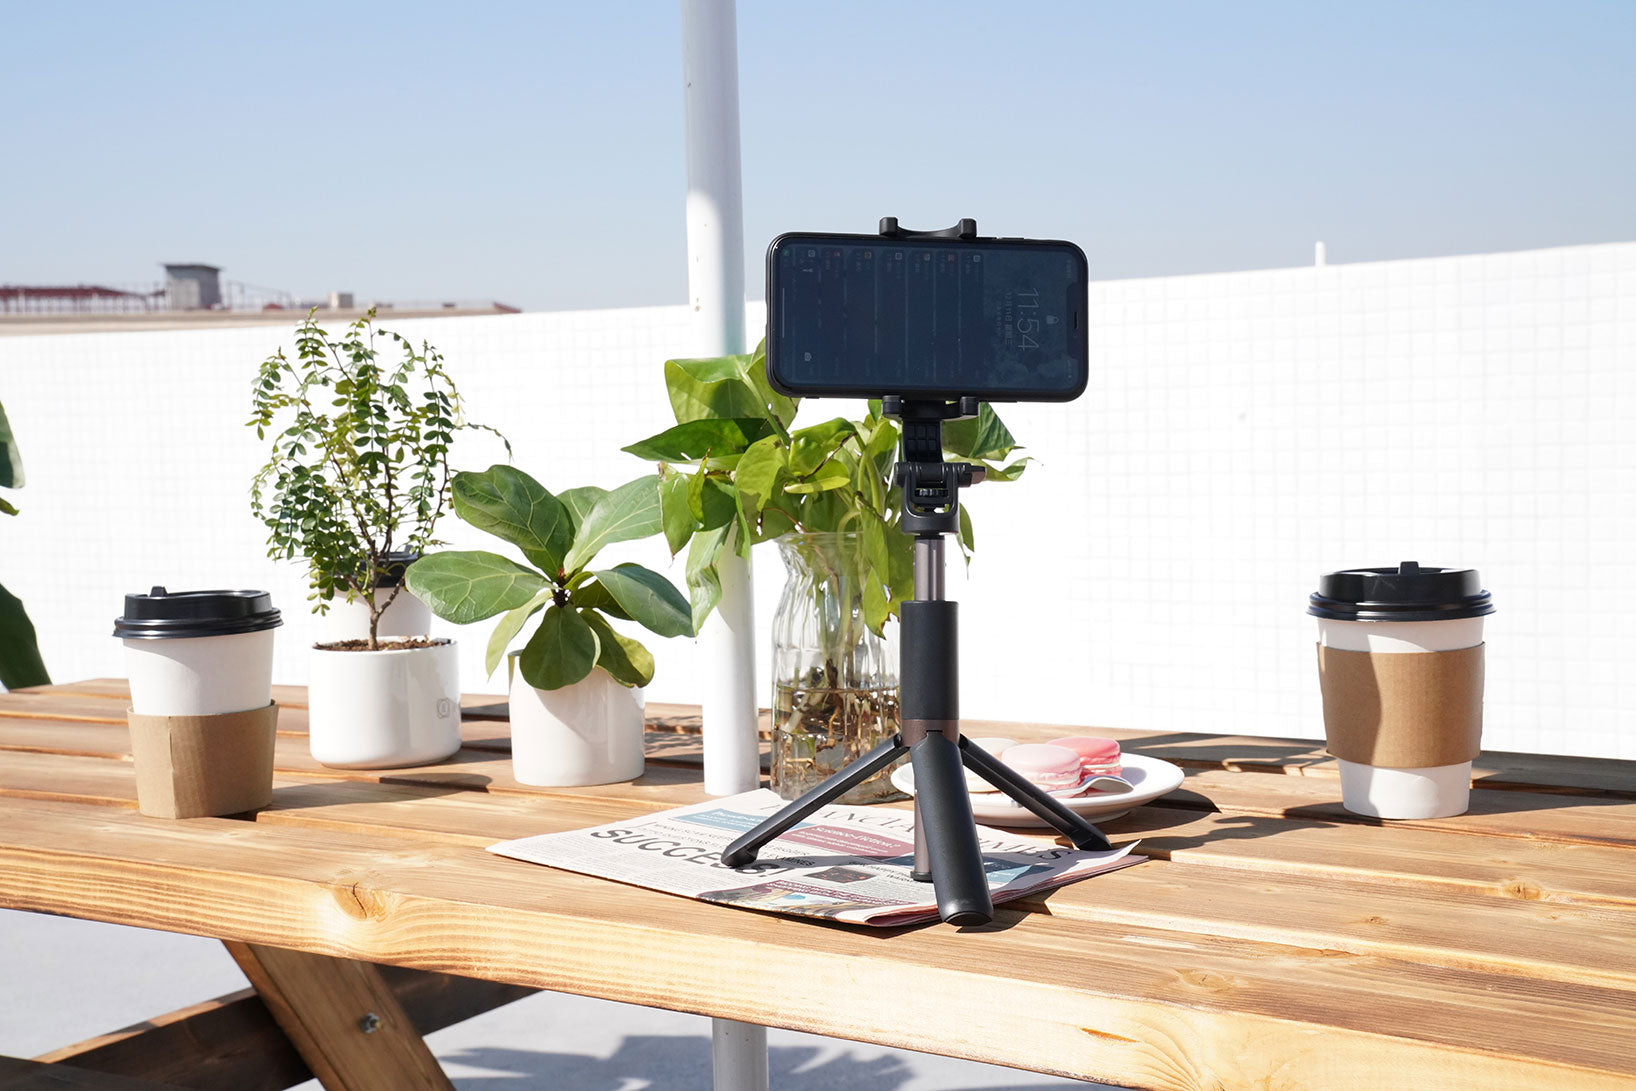 selfie stick in tripod mode and standing on a table